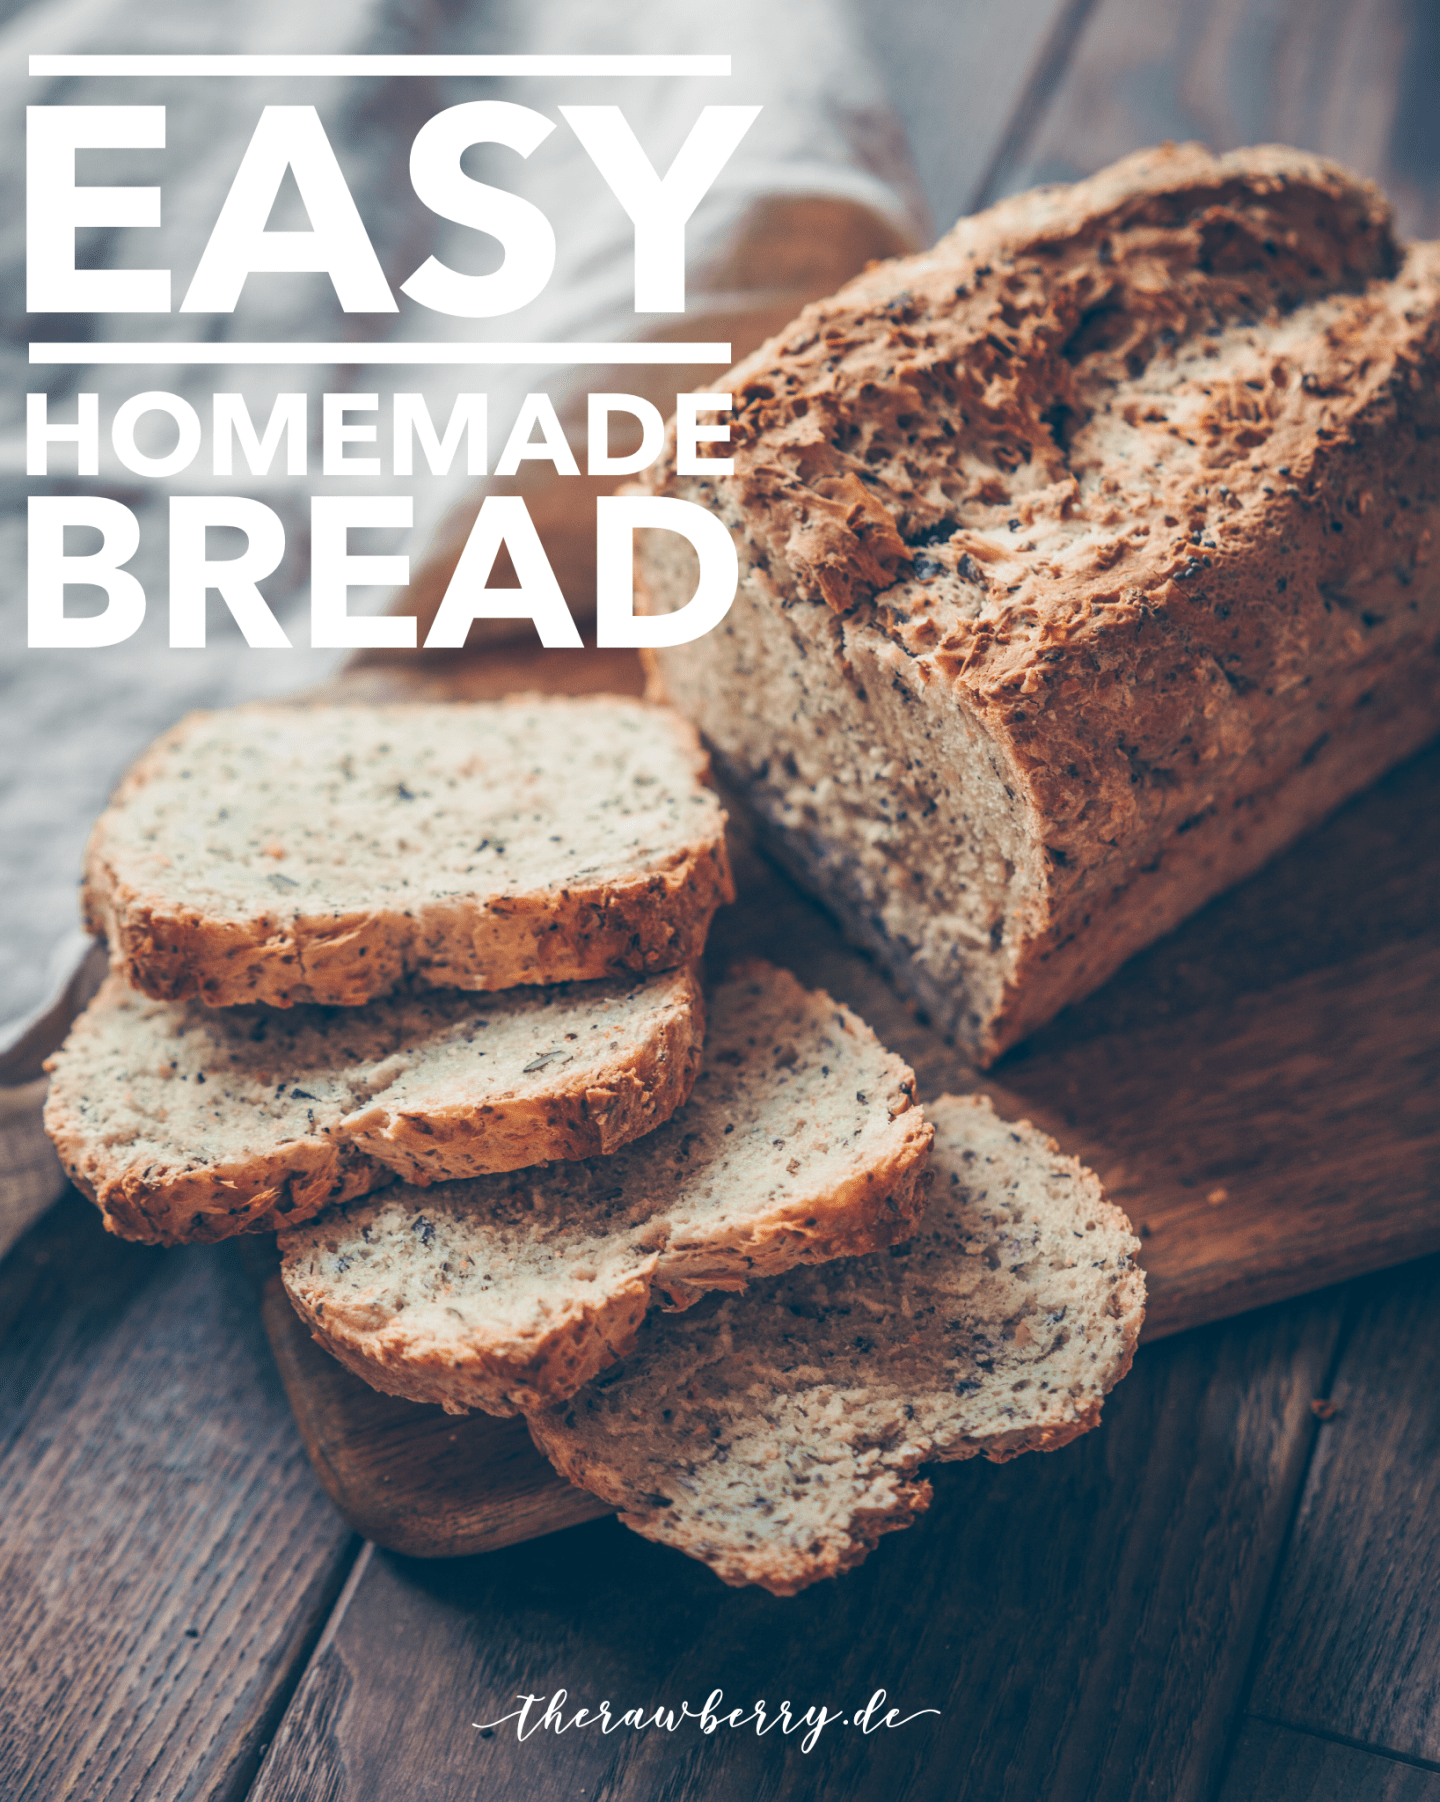 easy, einfach, bread, brot, baking, backen, boot backen, super lecker, healthy, seeds, samen, körner, grains, therawberry, vegan, dairy free, schnelles Mittagessen, schnelles Abendessen, quick dinner, easy lunch, breakfast, yum, yummy, diet, diät, healthy carbs, spelt, wheat, dinkel, weizen, toast, food, foodie, savory, Marie dorfschmidt, food photography, fotografie